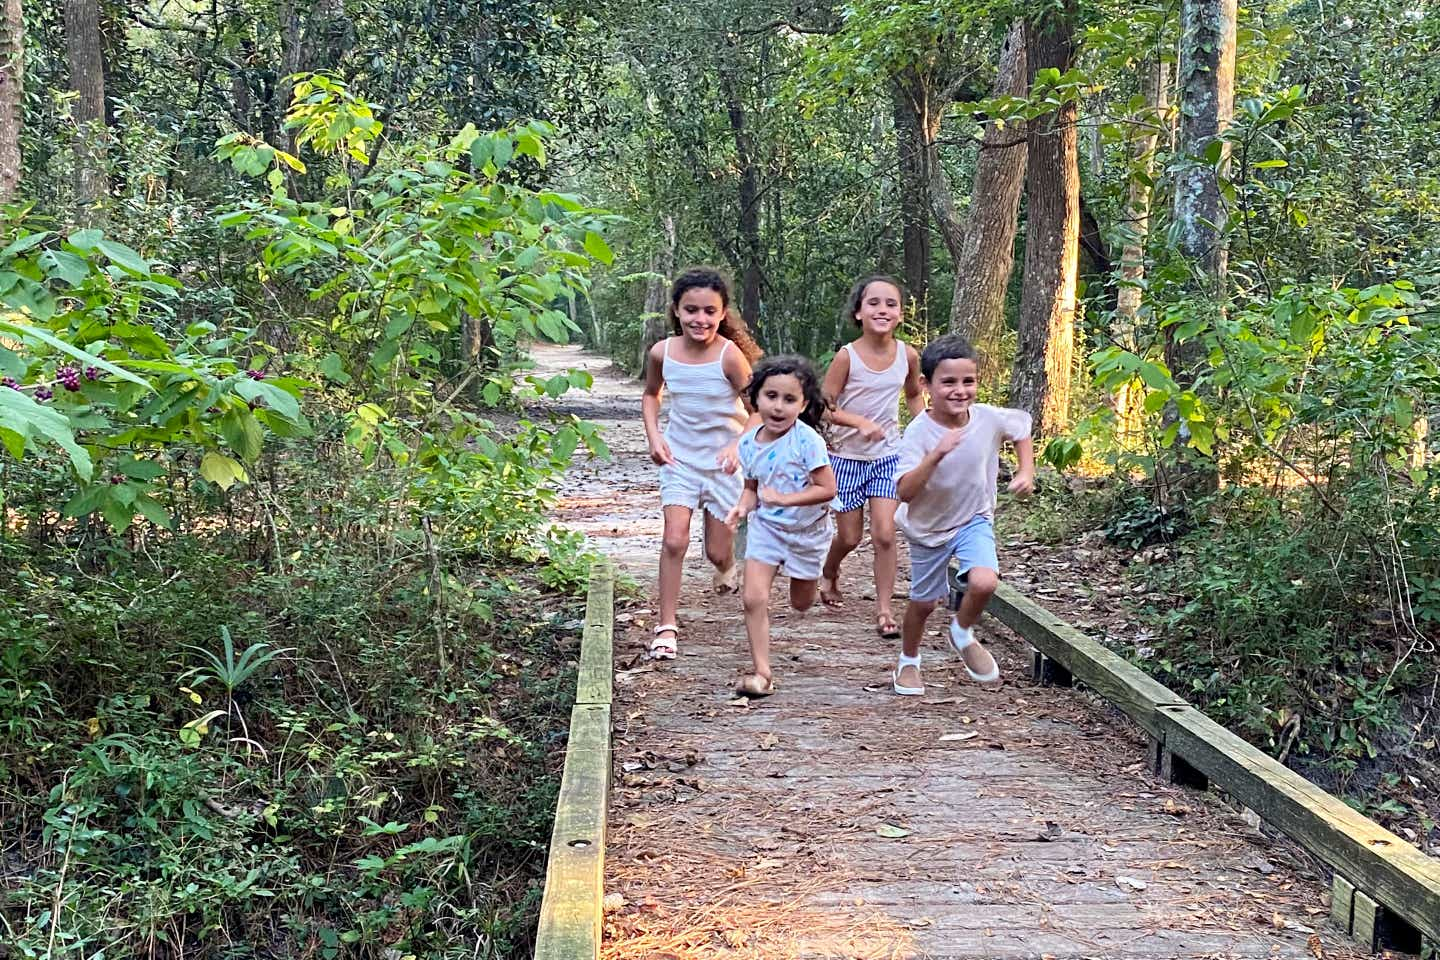 Brendas kids run on the hiking trail through a lush landscape.